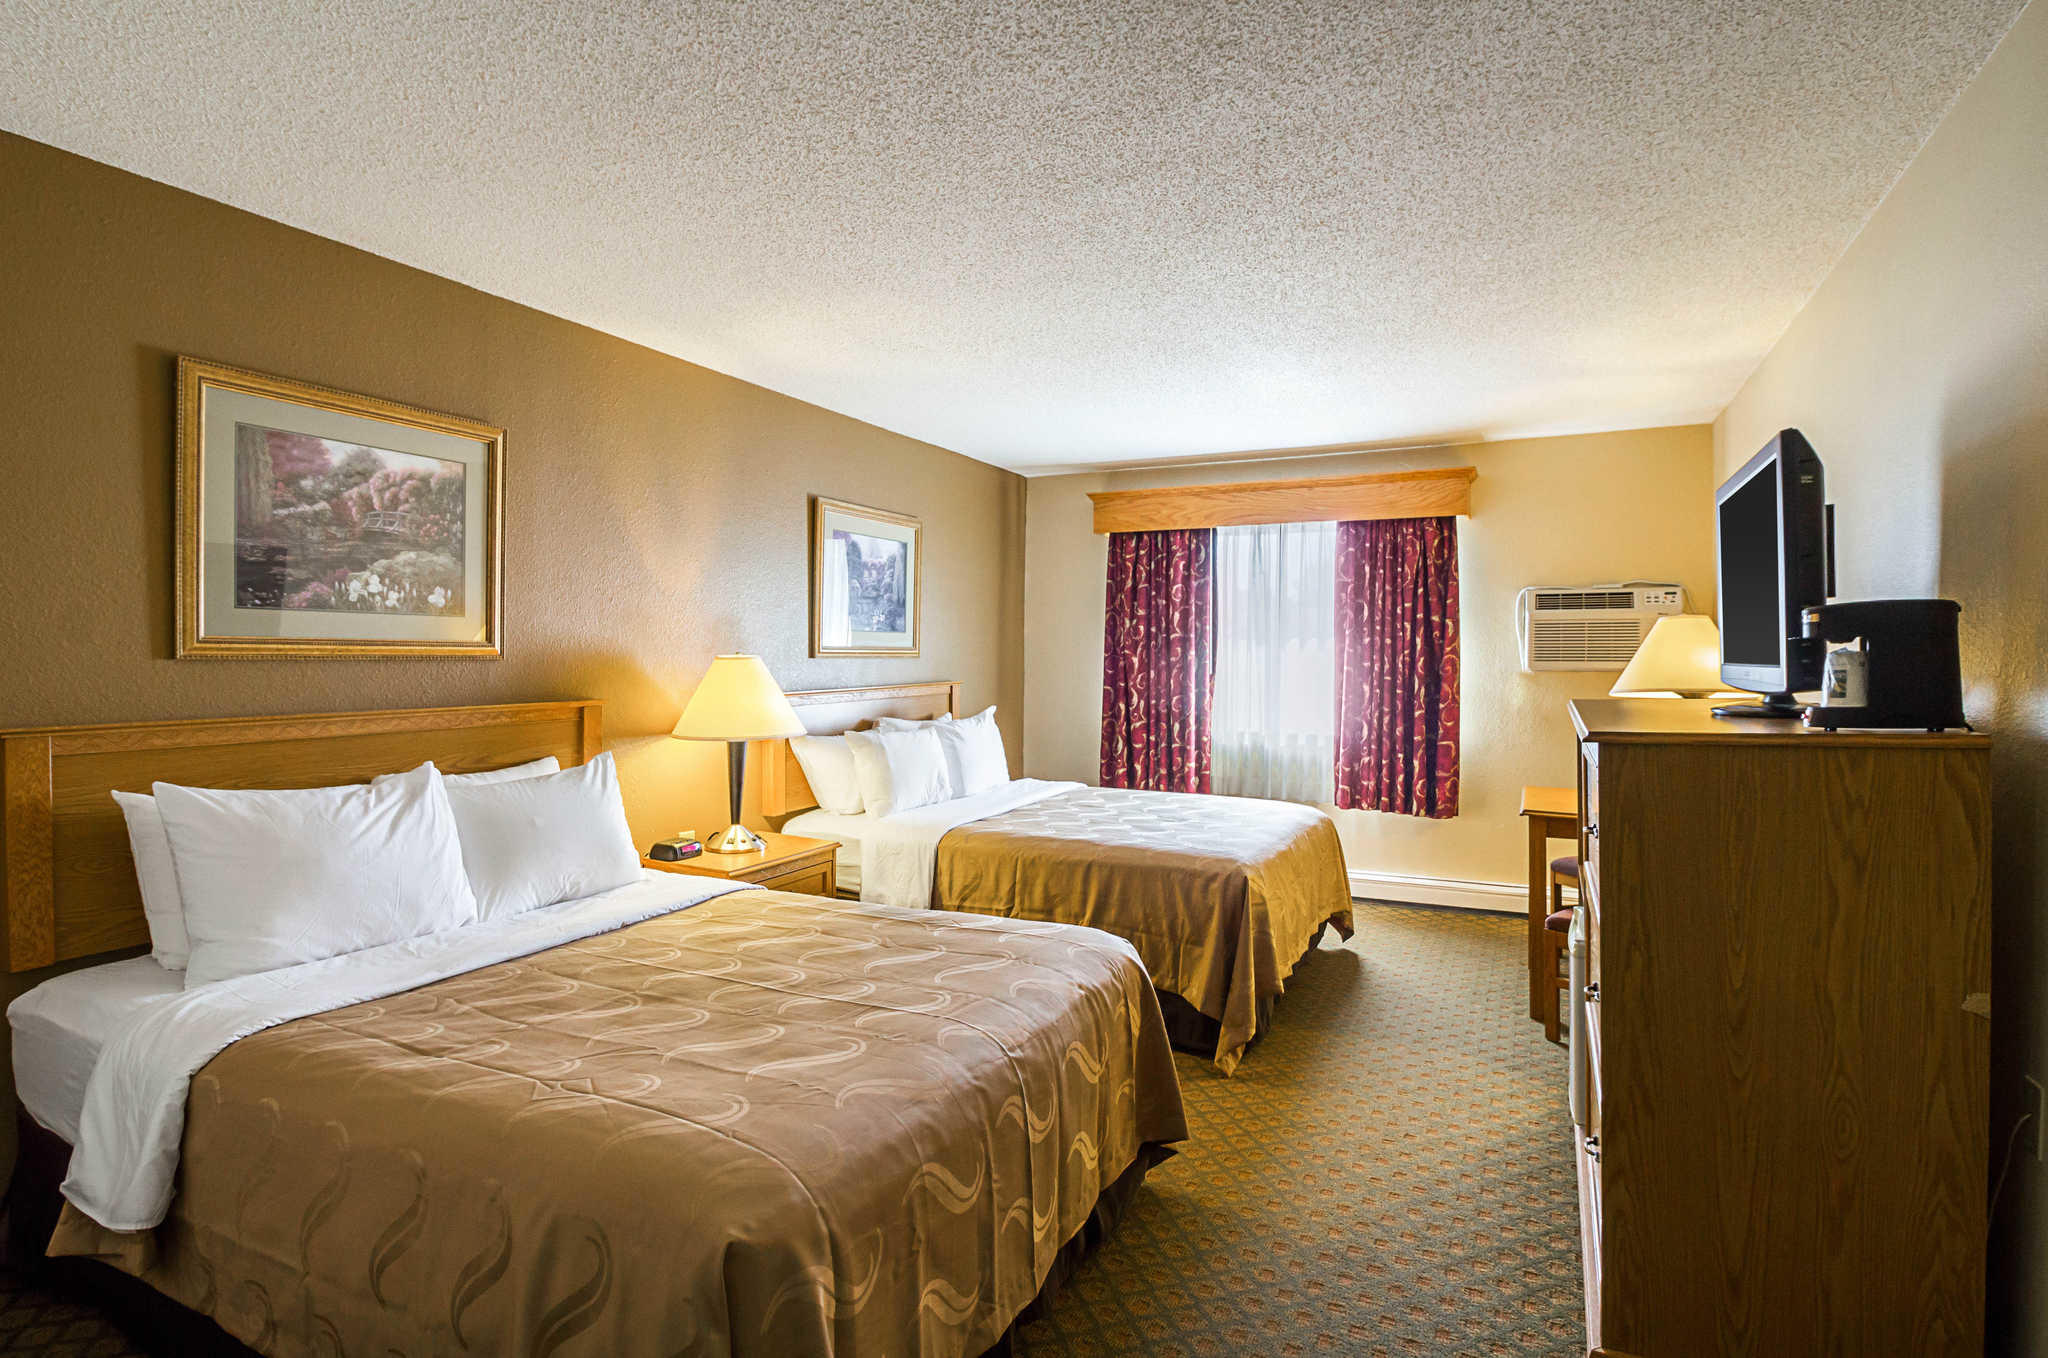 Quality Inn image 19